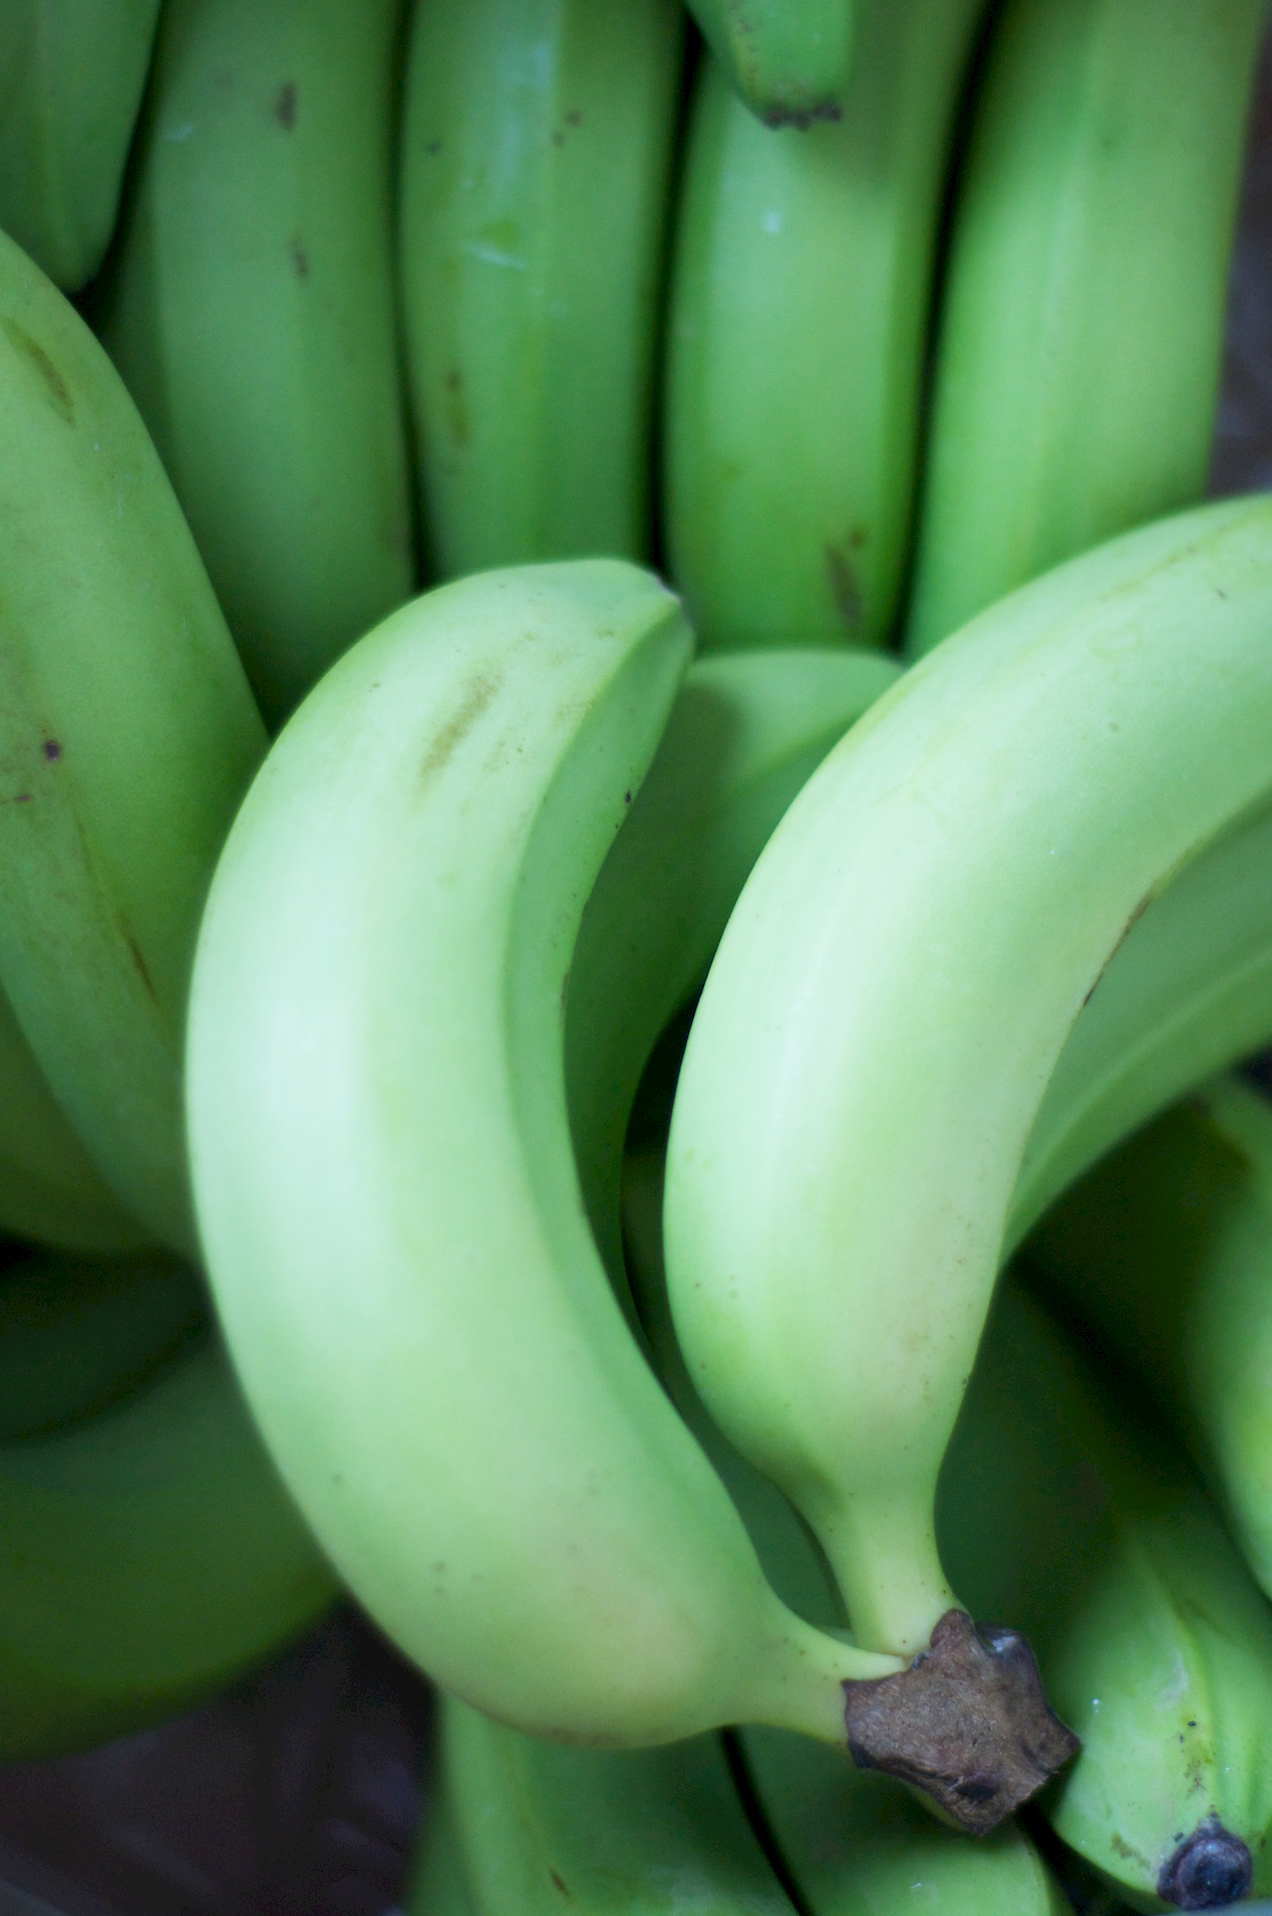 Green-bananas.jpg